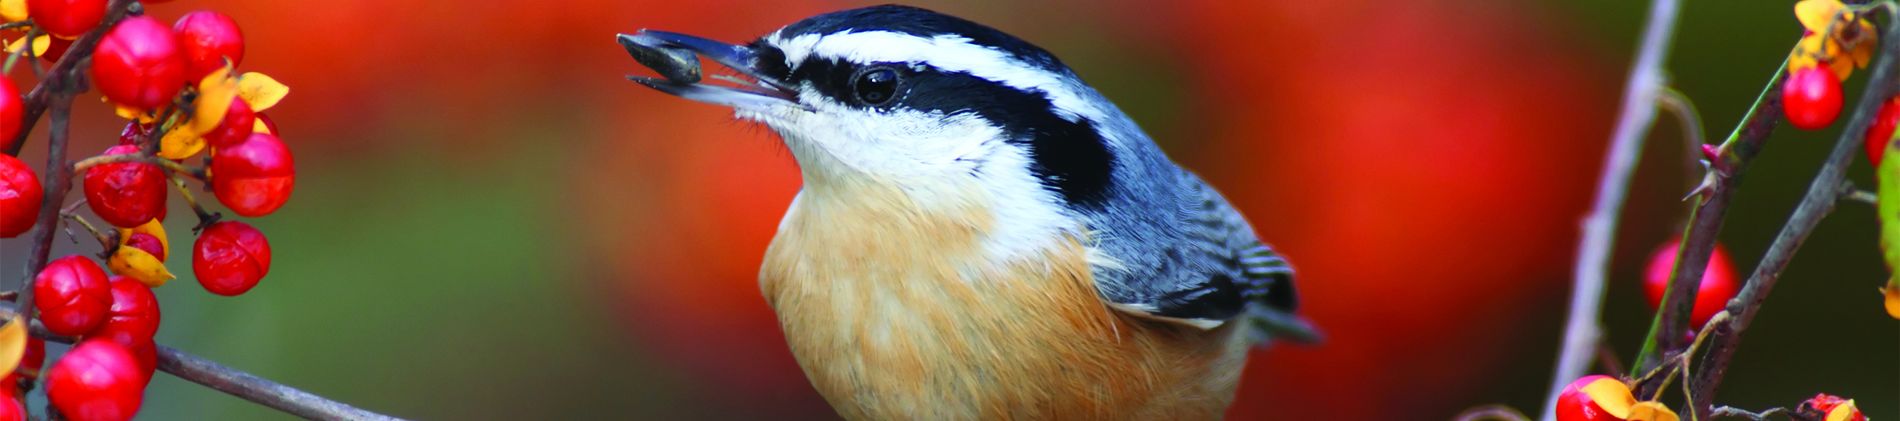 Image of a Red-breasted Nuthatch